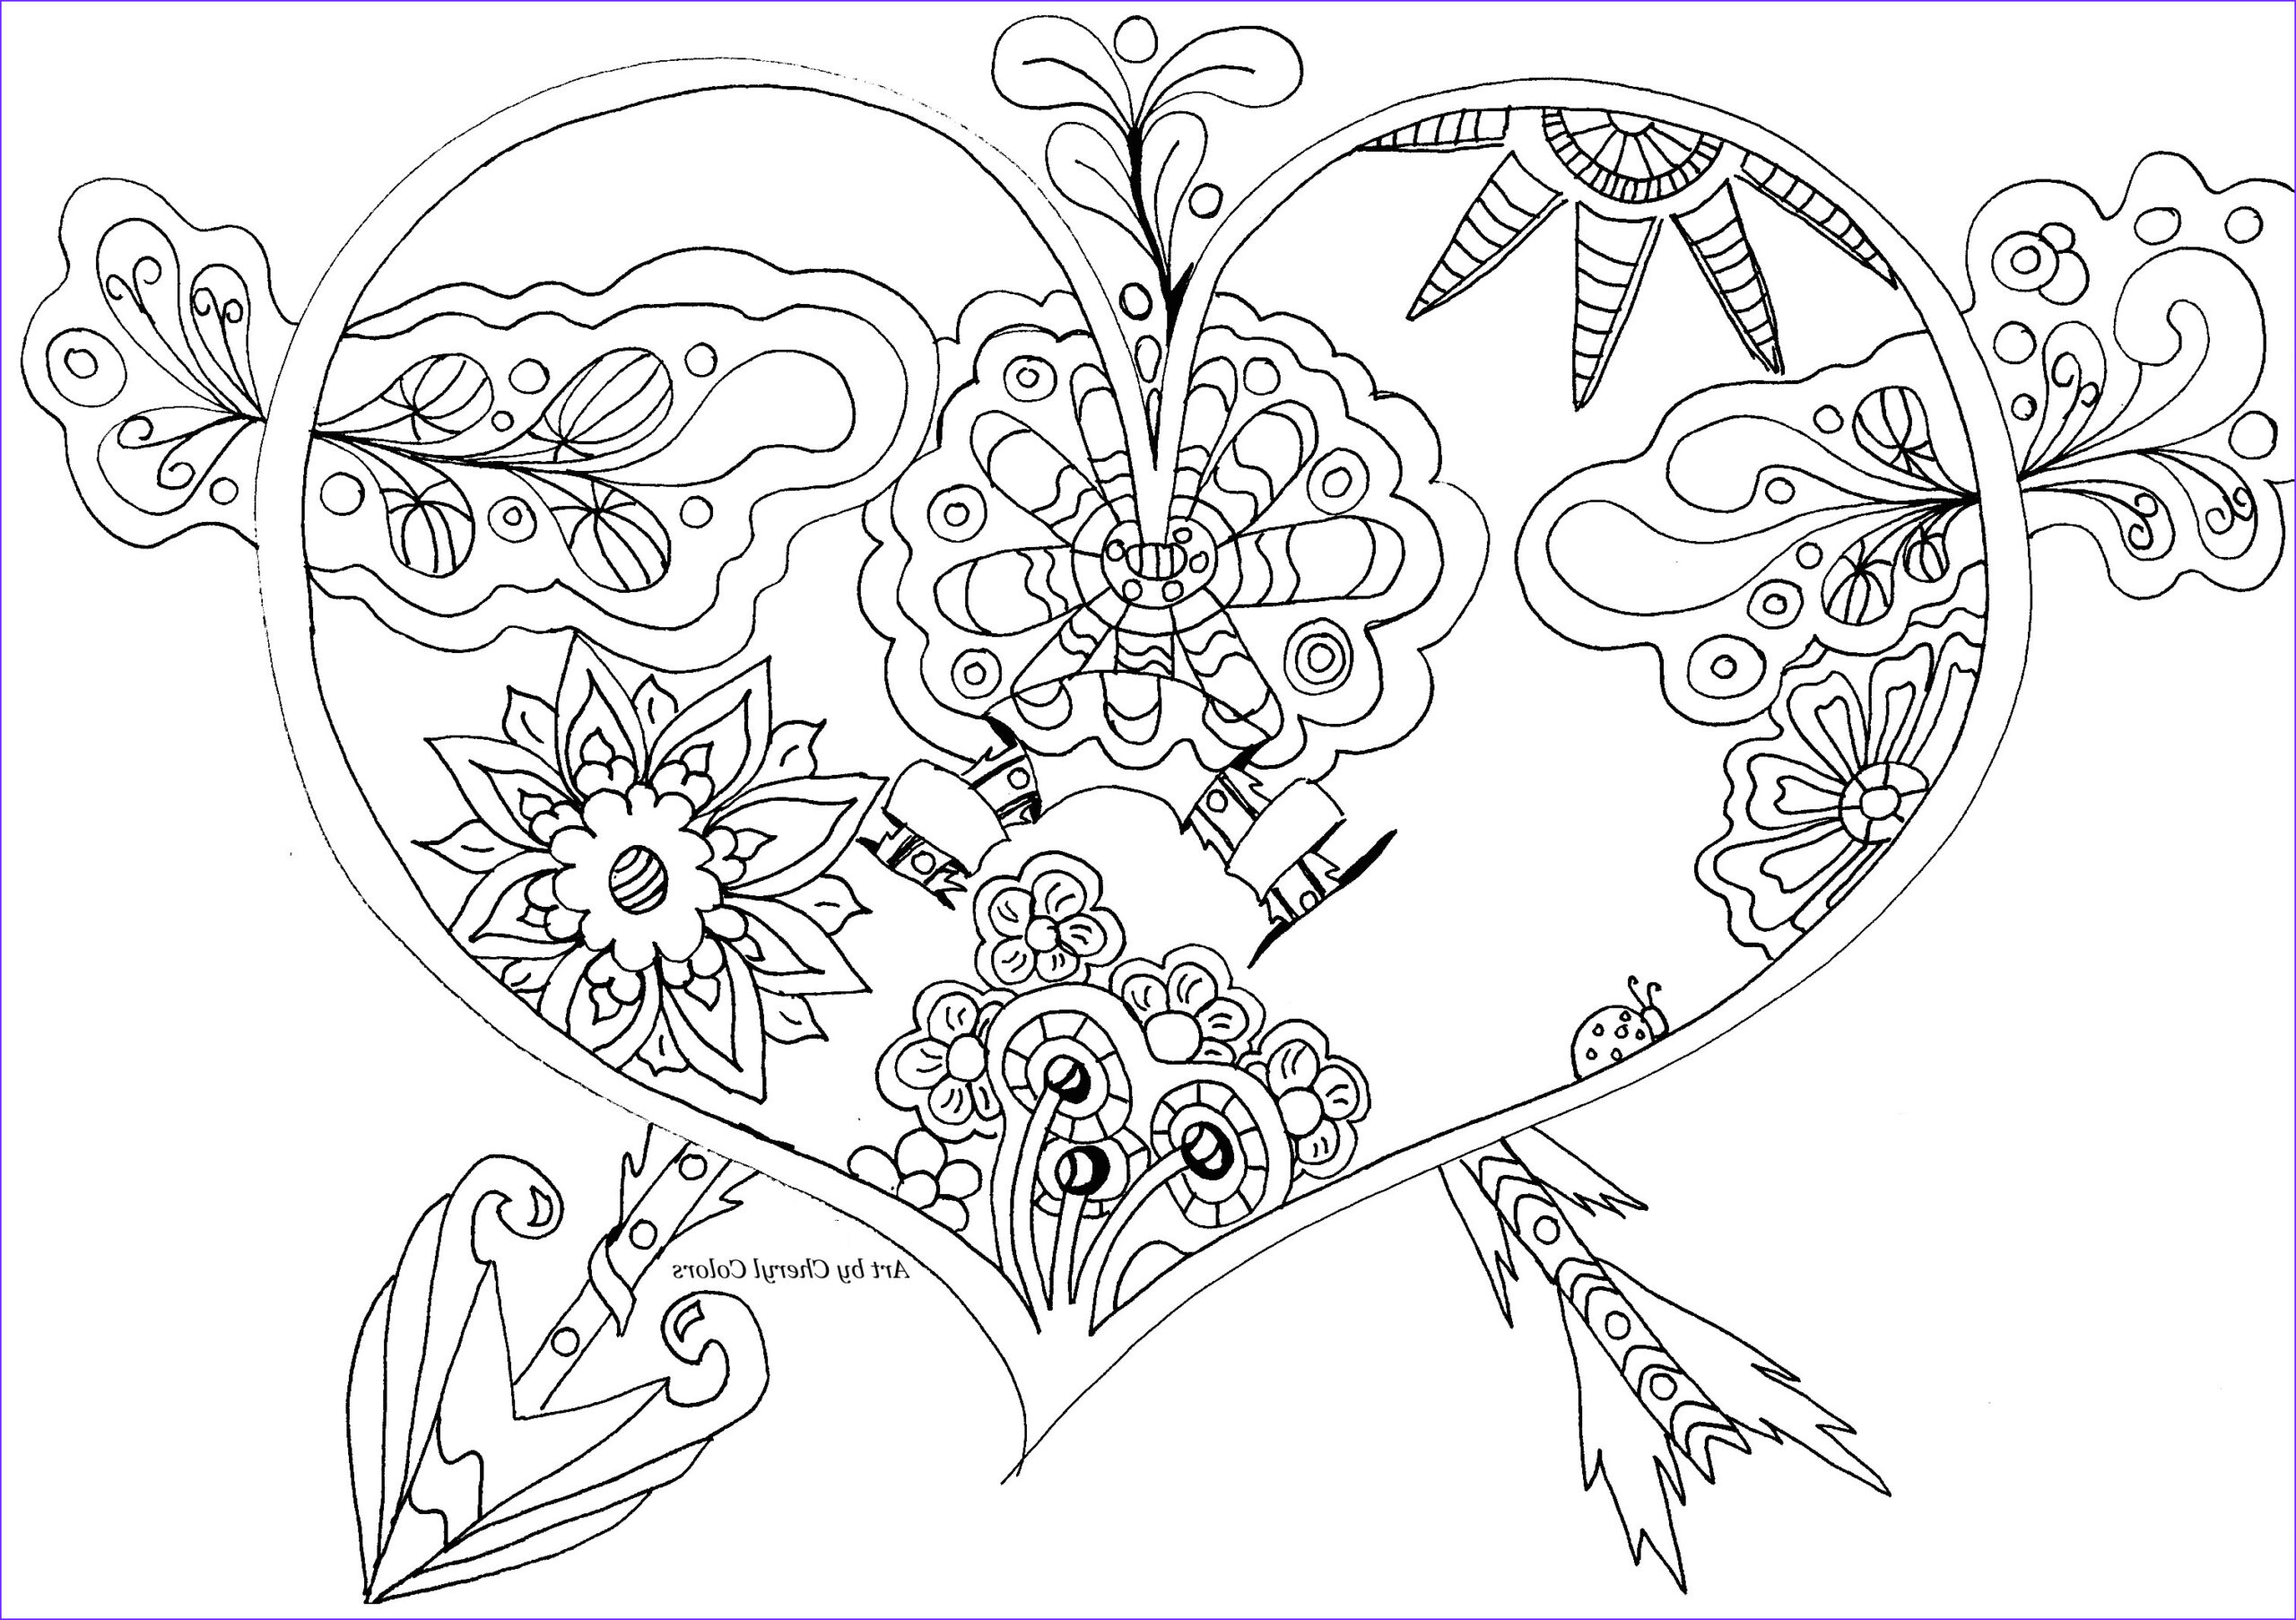 New Coloring Books for Adults Beautiful Image Free Coloring Pages – Adult Coloring Worldwide